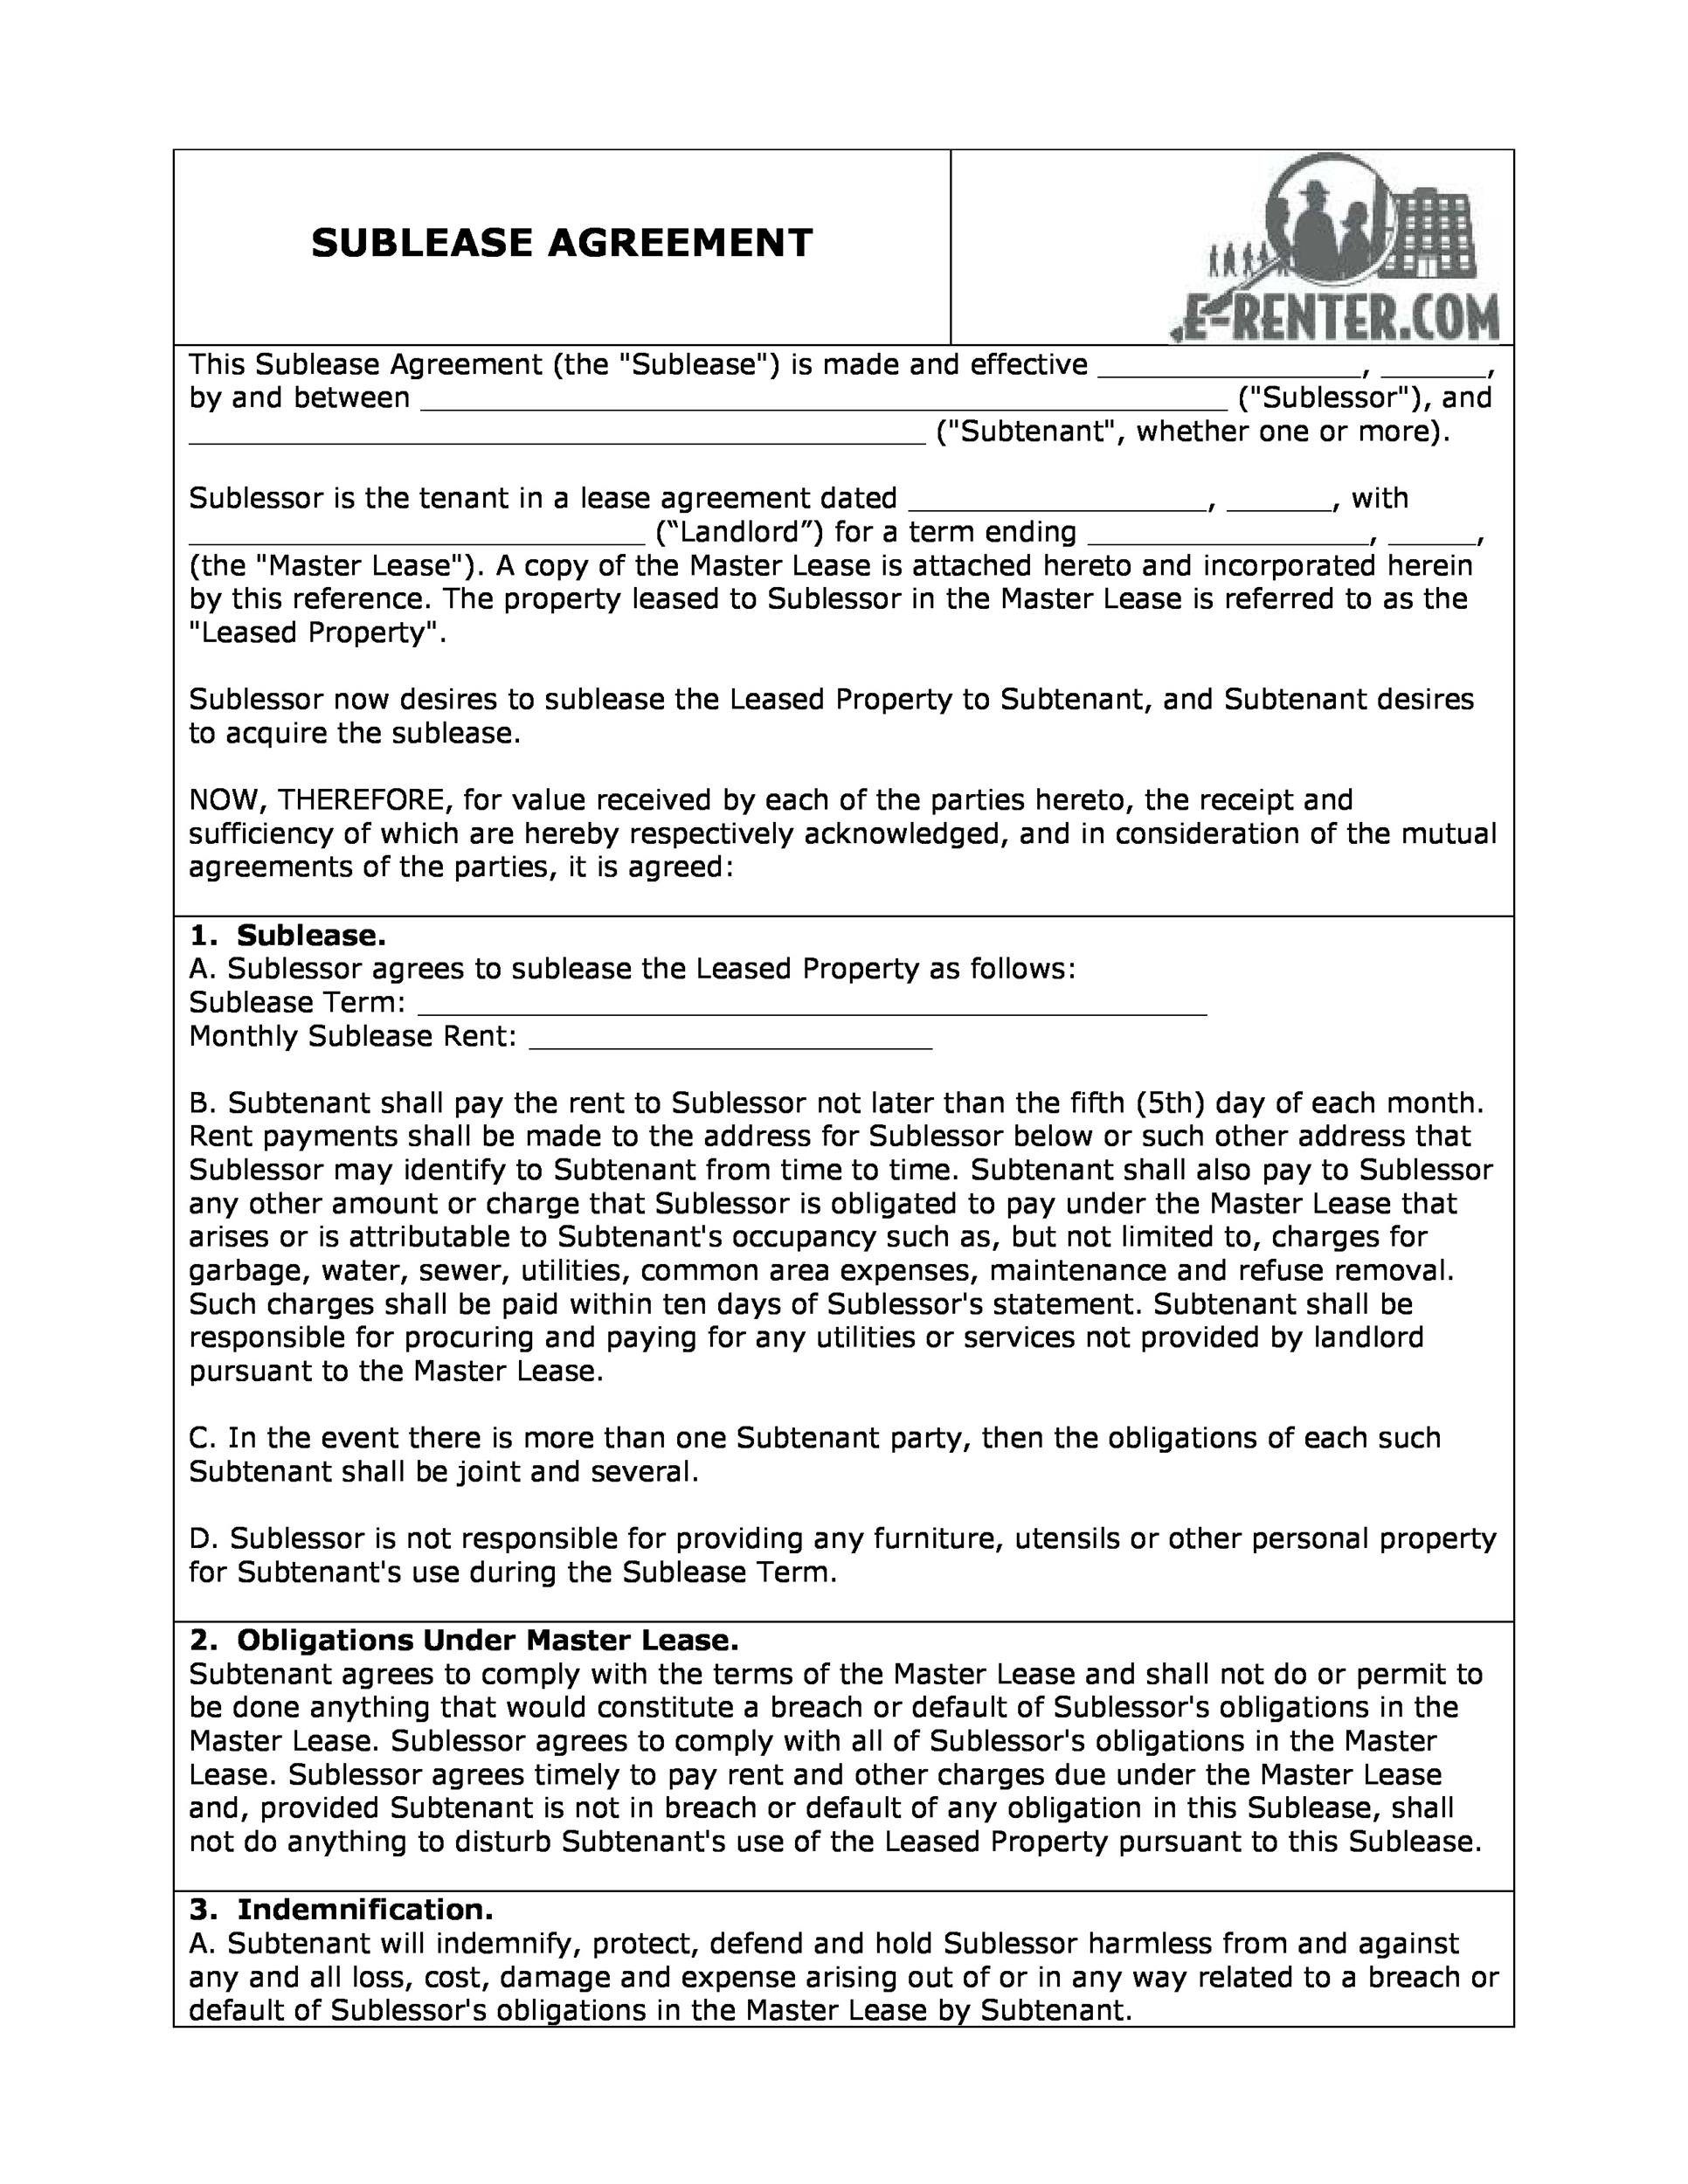 40 Professional Sublease Agreement Templates Forms Template Lab